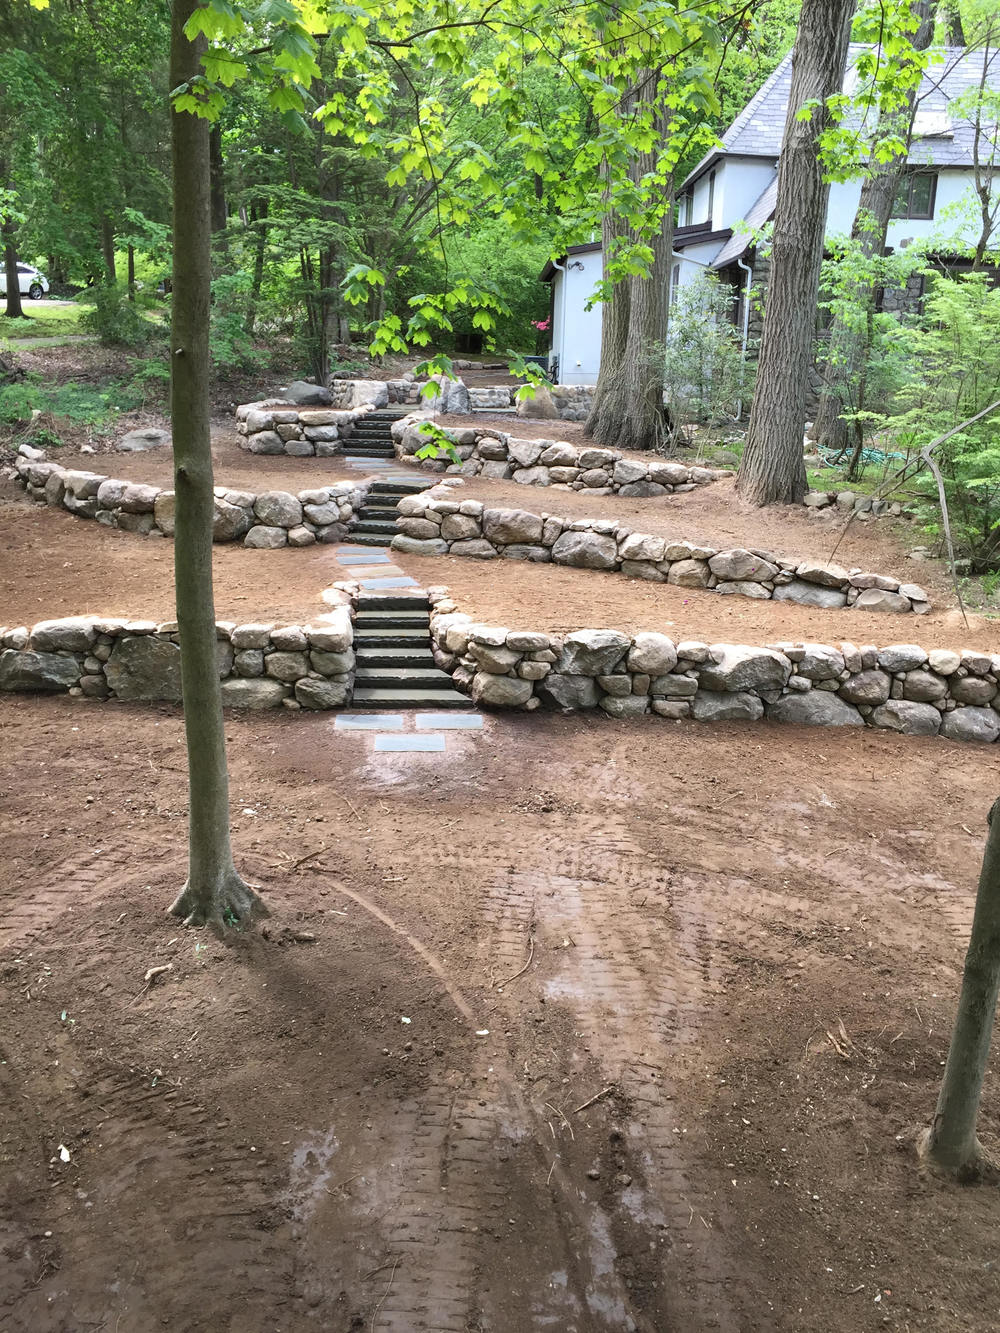 Beautiful Stone Walk Way U0026 Retaining Wall Project Near Completion In  Mahwah, NJ U2014 Grasskeepers Landscaping U0026 Construction Inc.